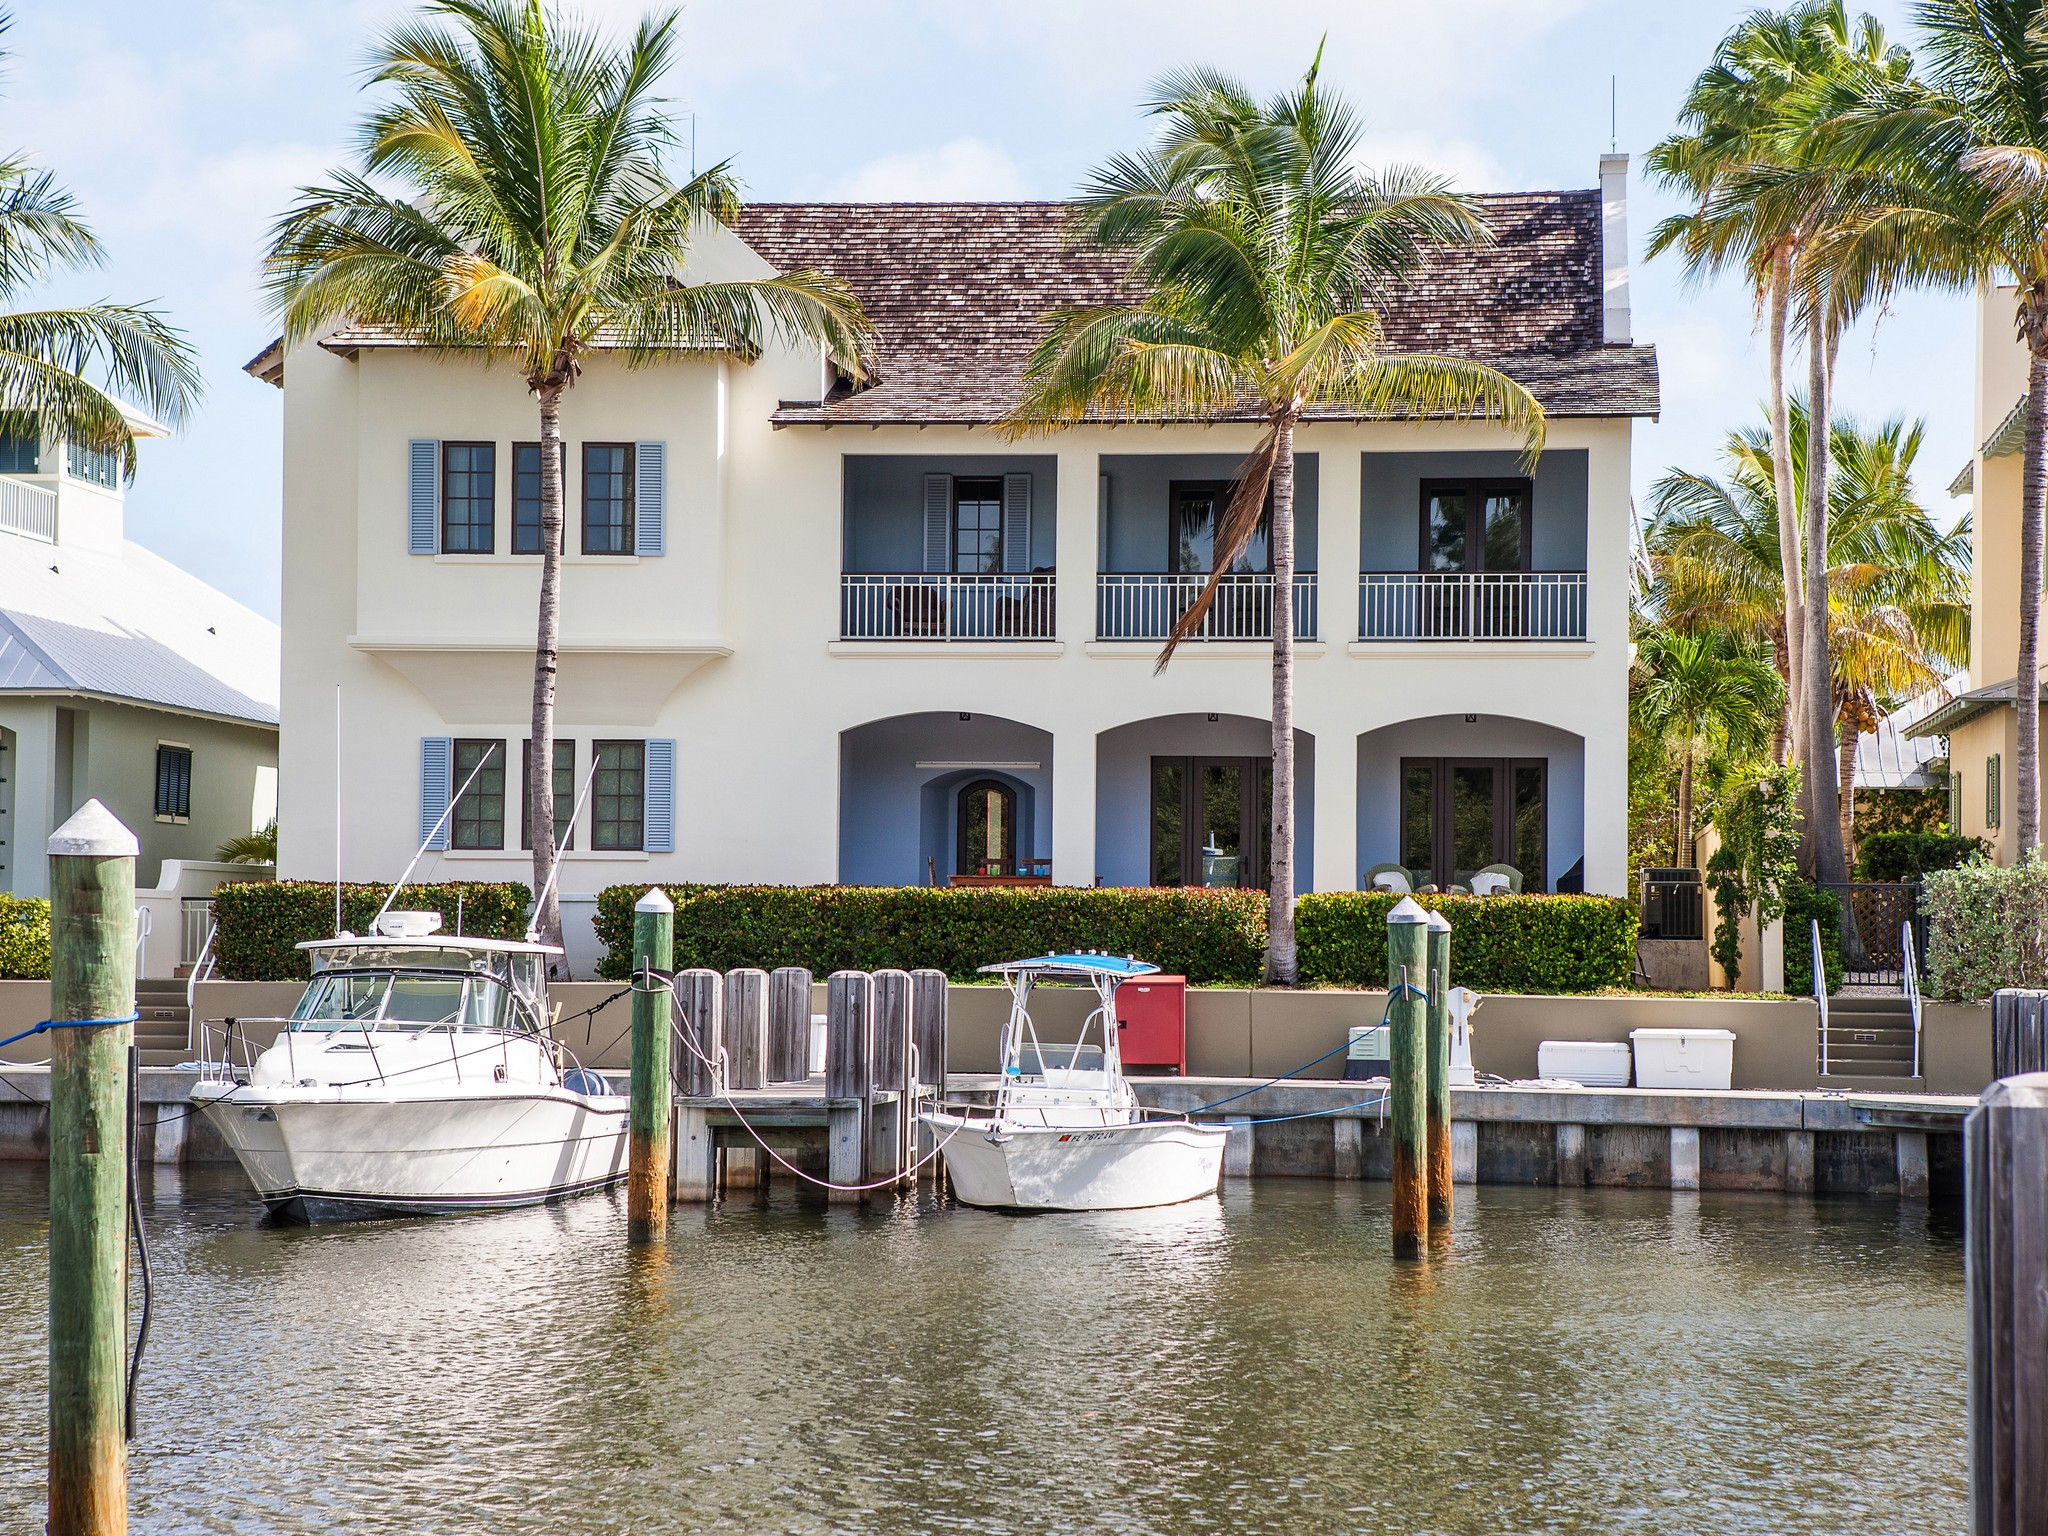 Single Family Home for Sale at Marsh Island Riverfront Home 2935 Marsh Island Lane Vero Beach, Florida 32963 United States